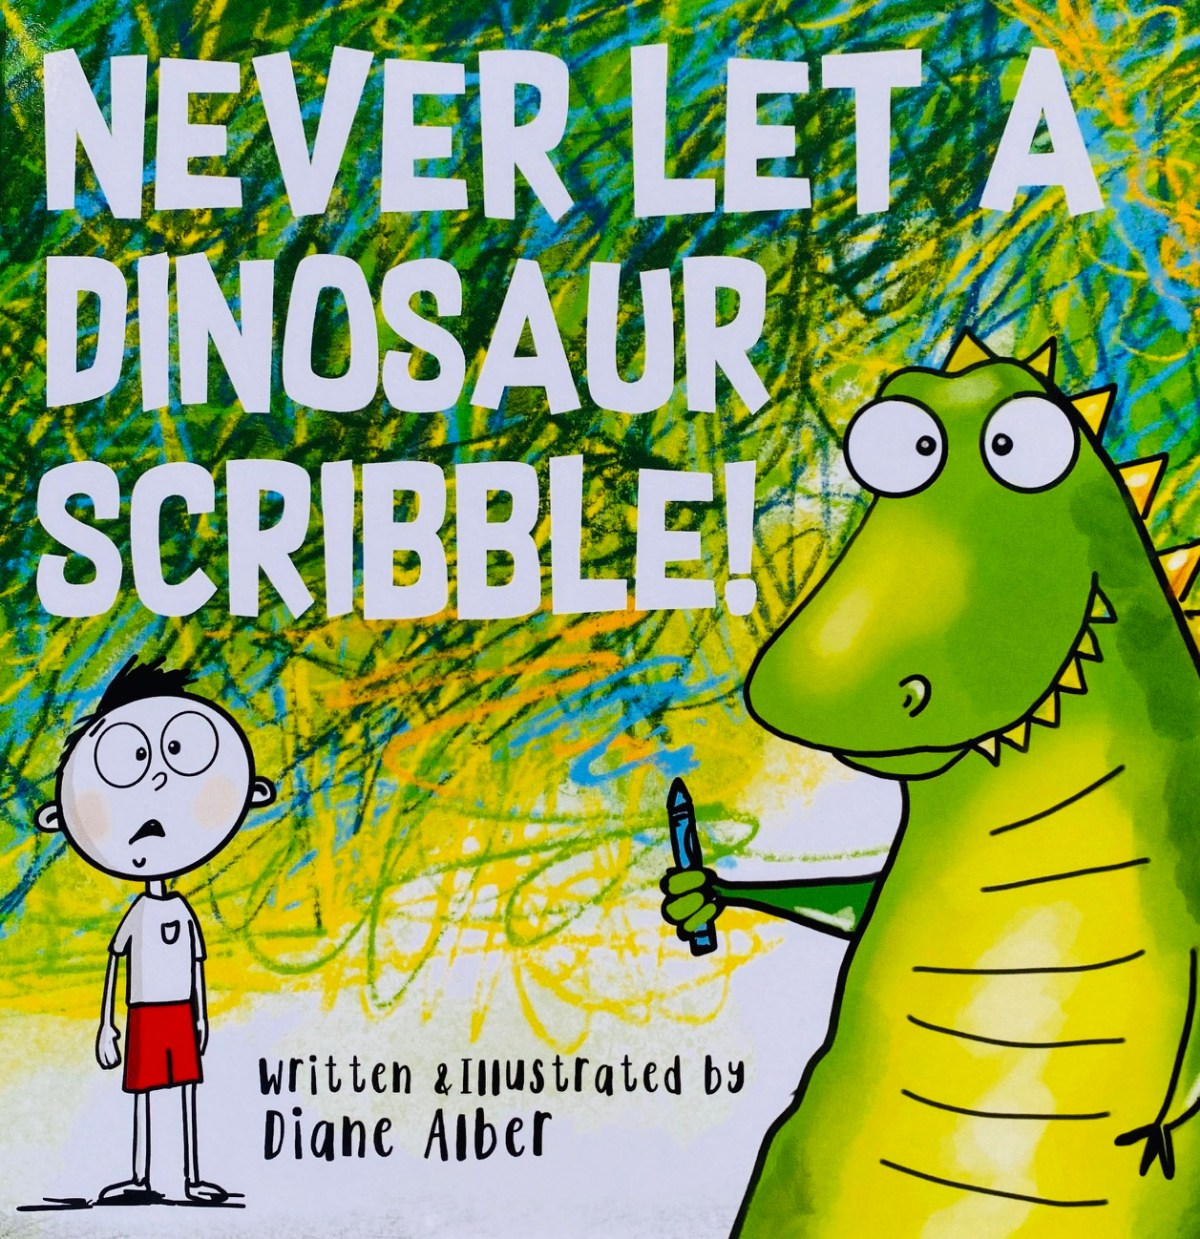 children's art book about using your imagination when creating art